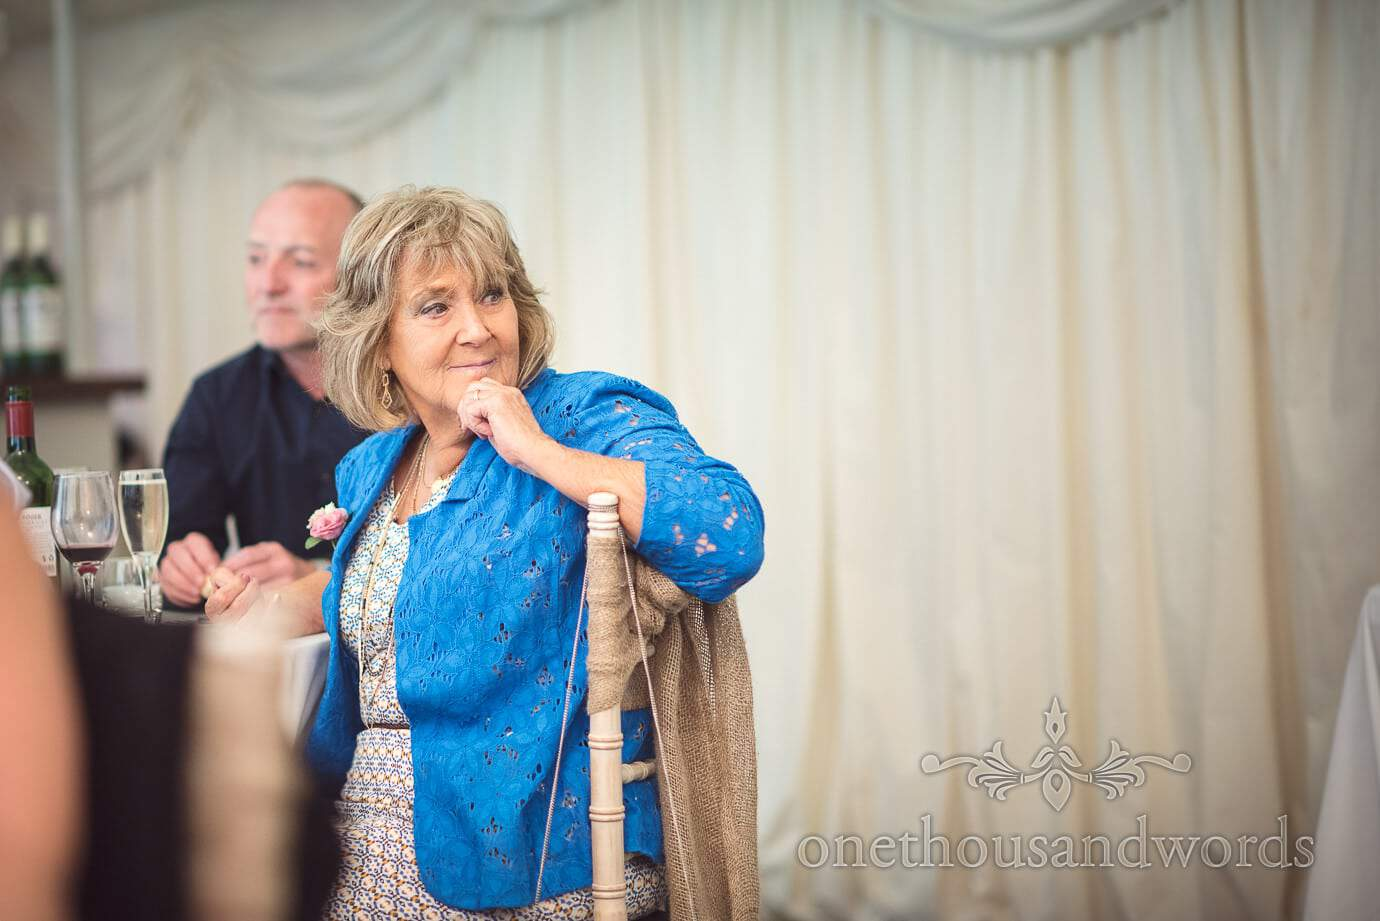 Wedding guest in blue jacket listens intently to speeches at The Old Vicarage Wedding